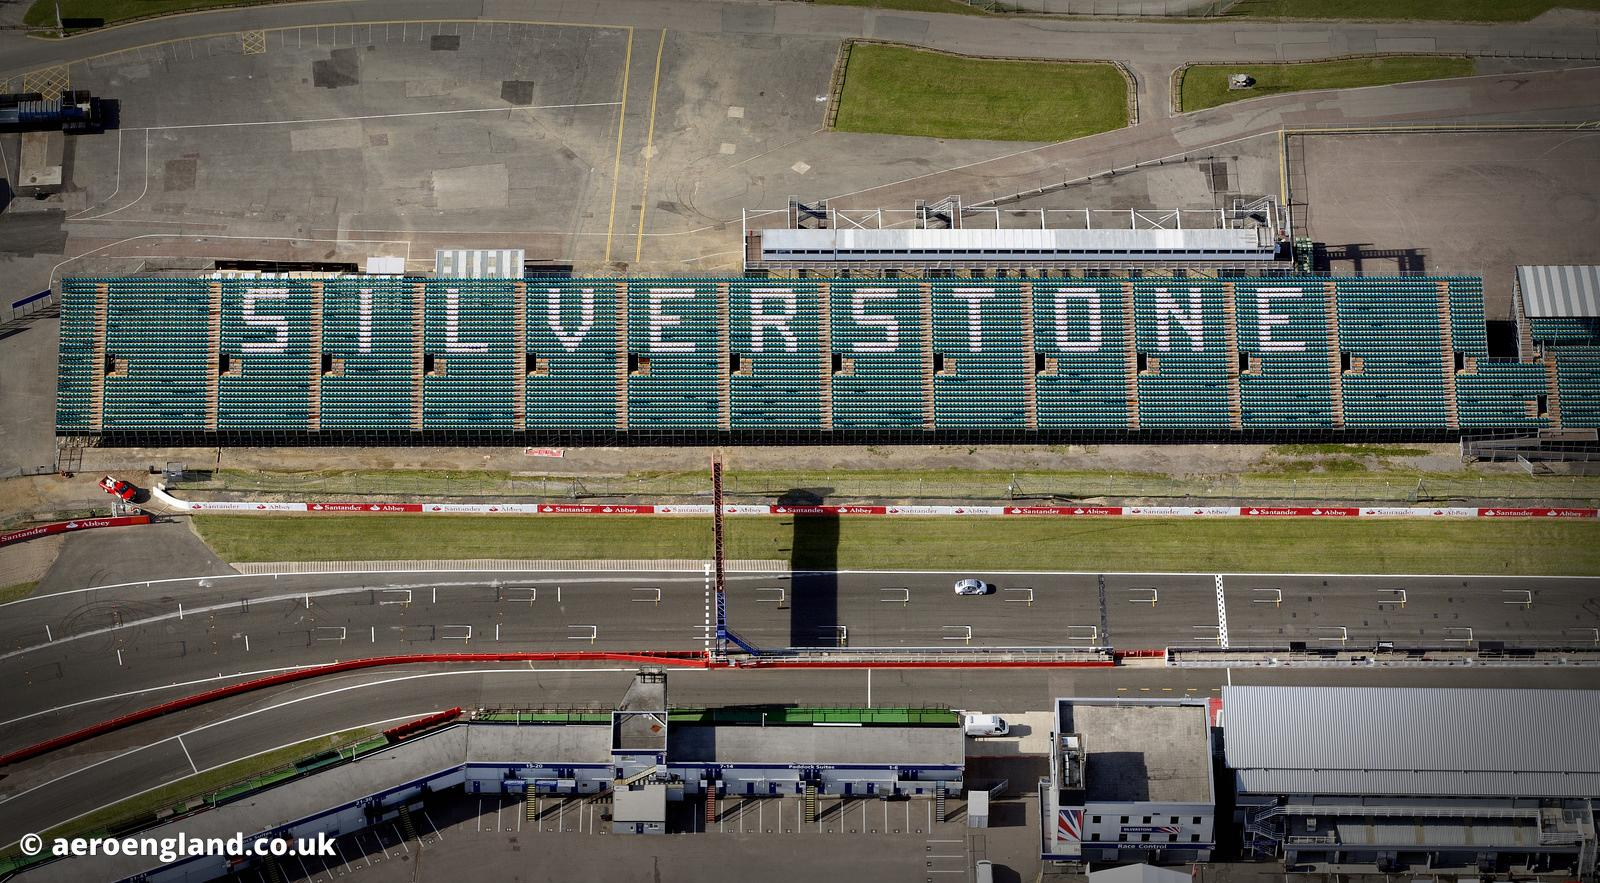 aeroengland | aerial photograph of Silverstone Circuit ...